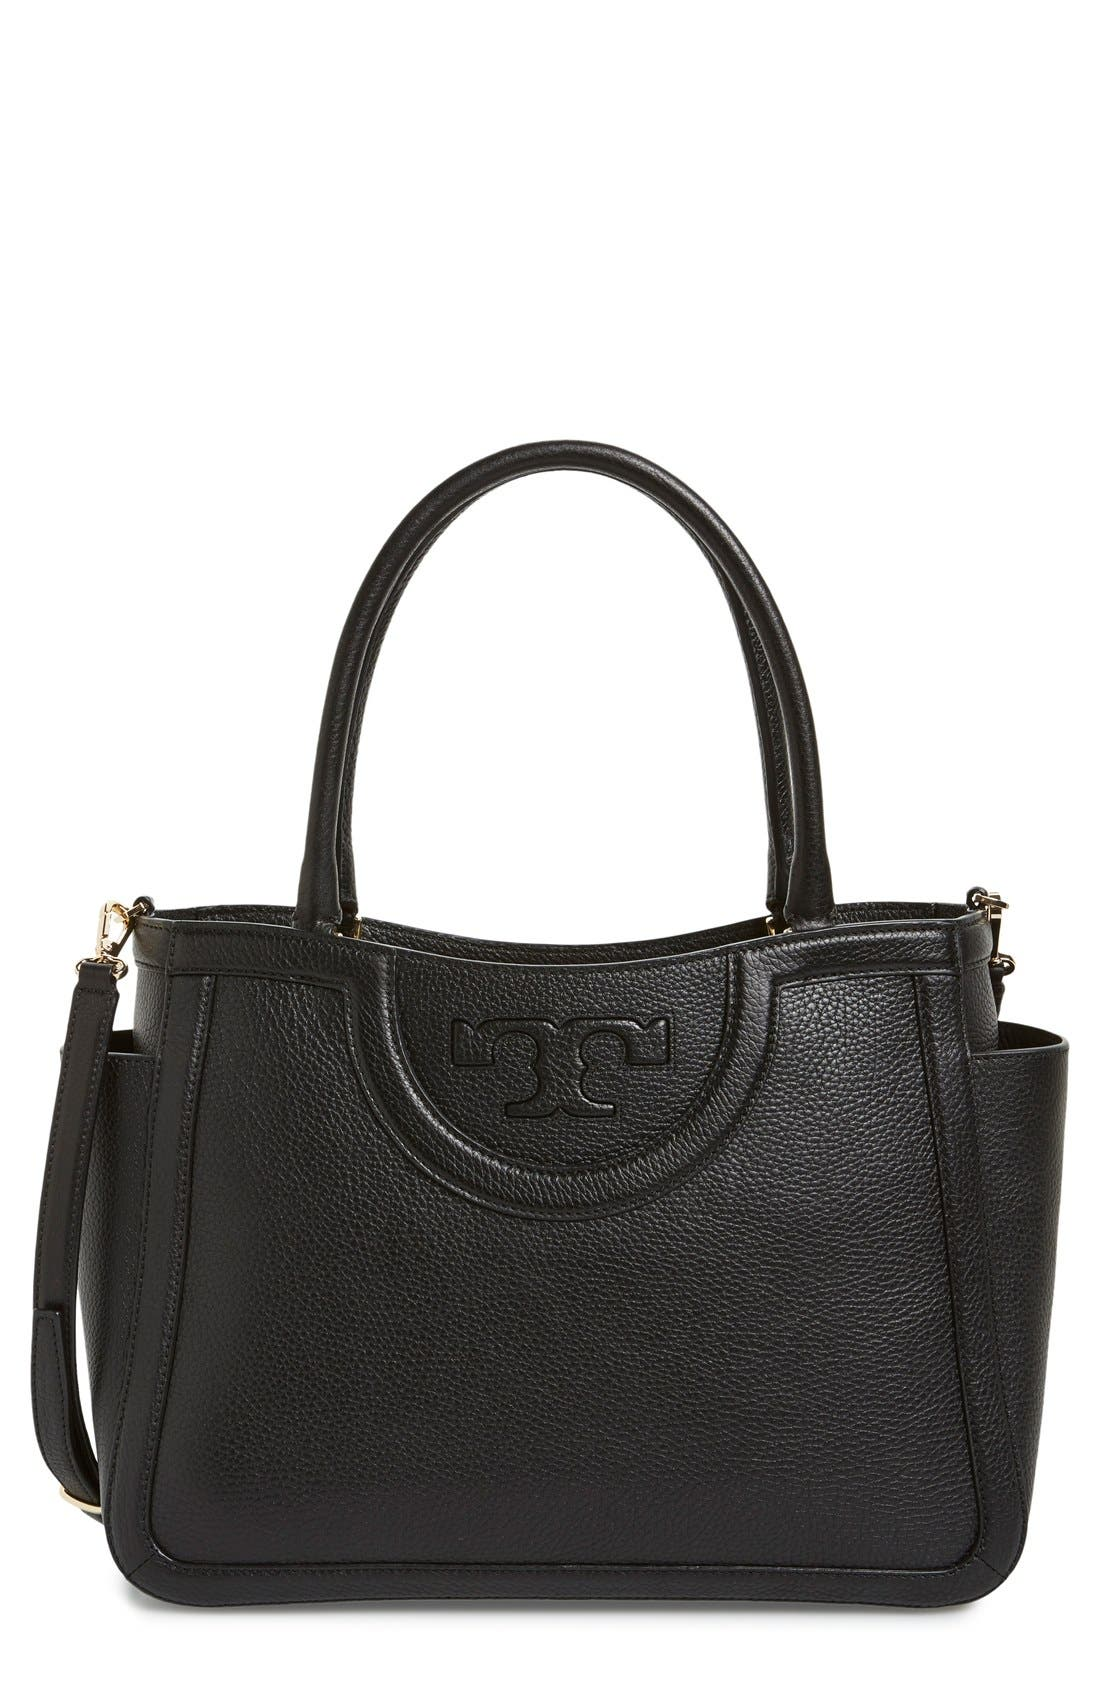 TORY BURCH 'Serif T' Leather Crossbody Satchel, Main, color, 001